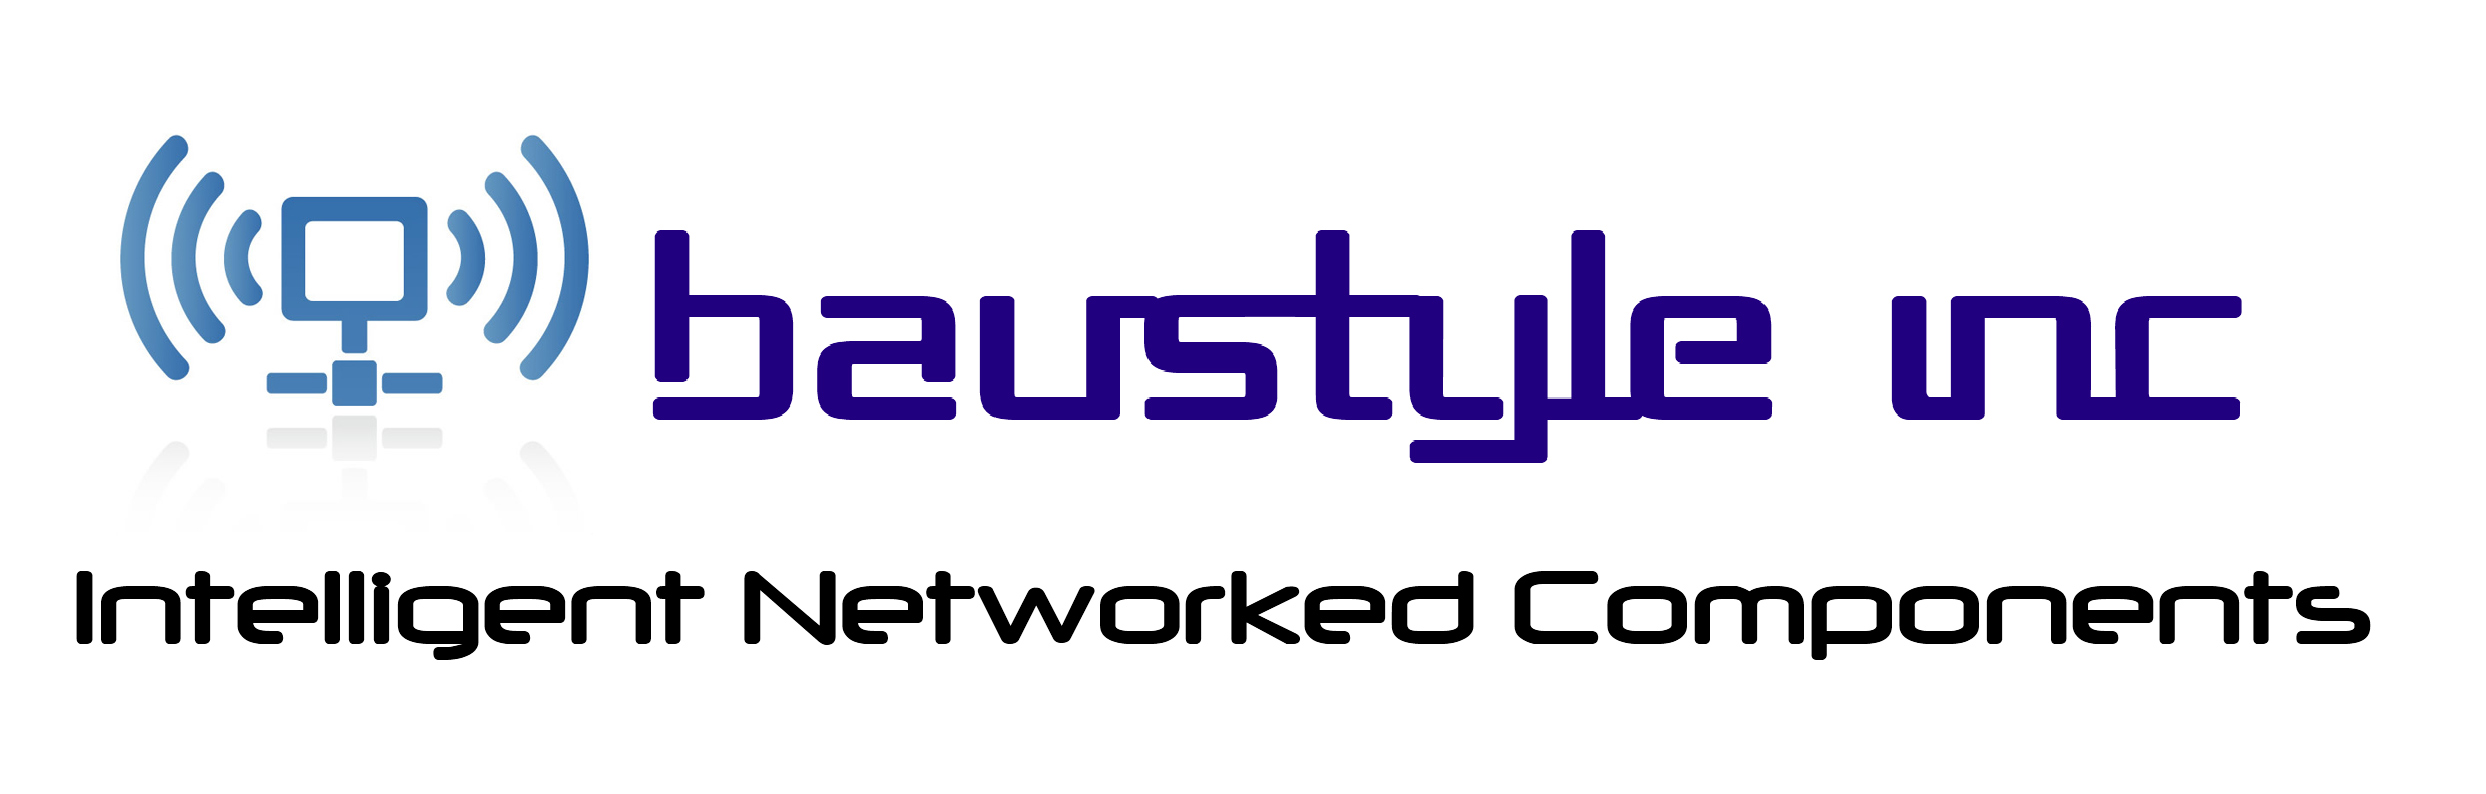 BauStyle INC - Intelligent Networked Components